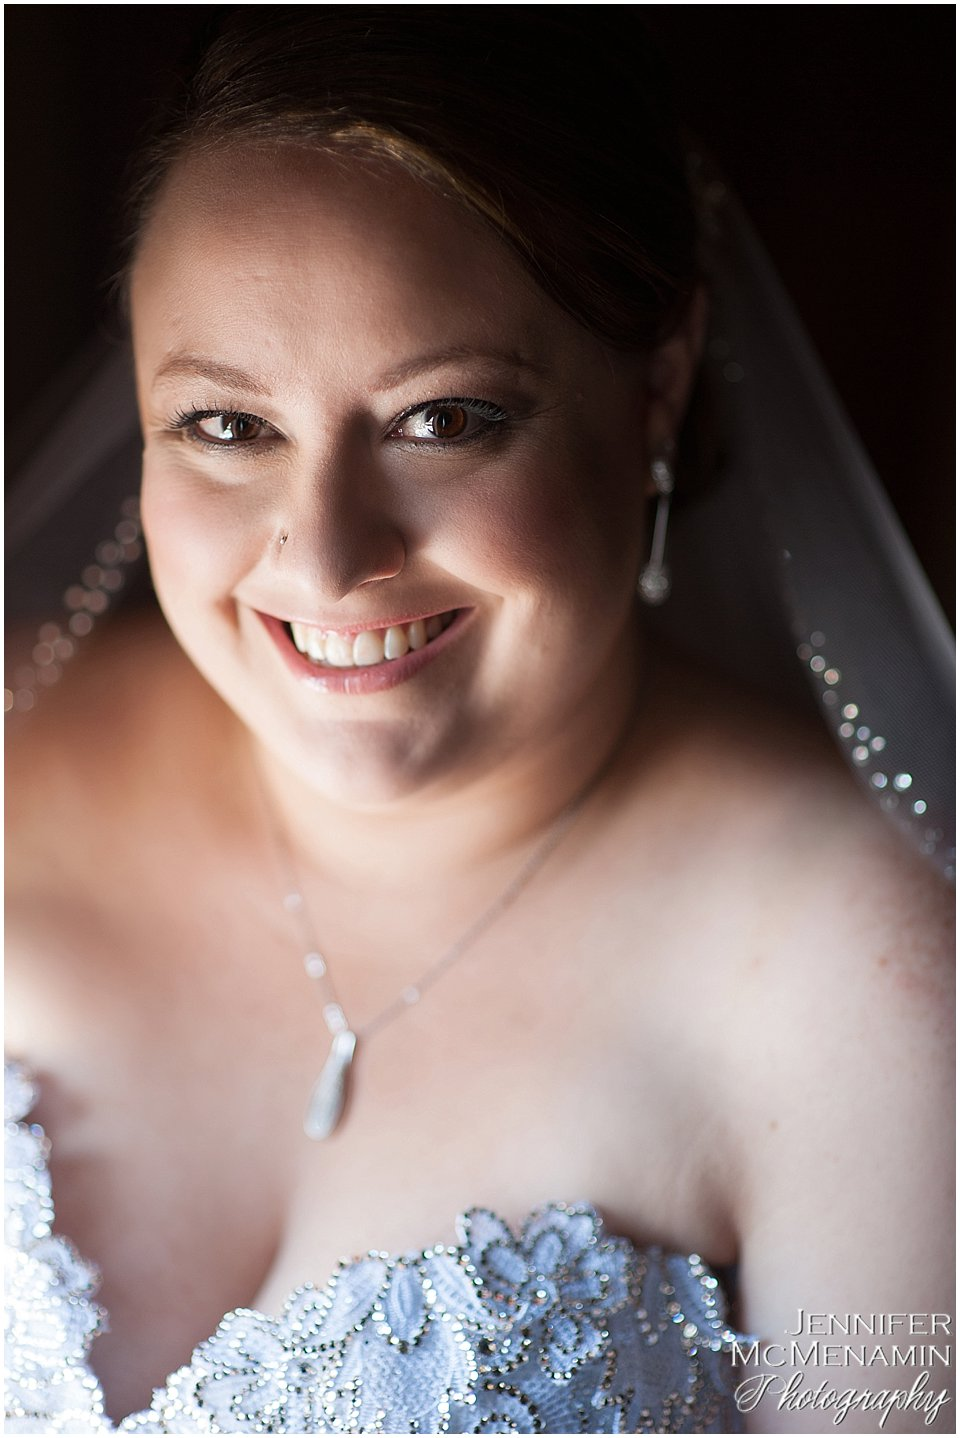 004-KinzlerShaull_00695_Jennifer-McMenamin-Photography-Peabody-Library-wedding